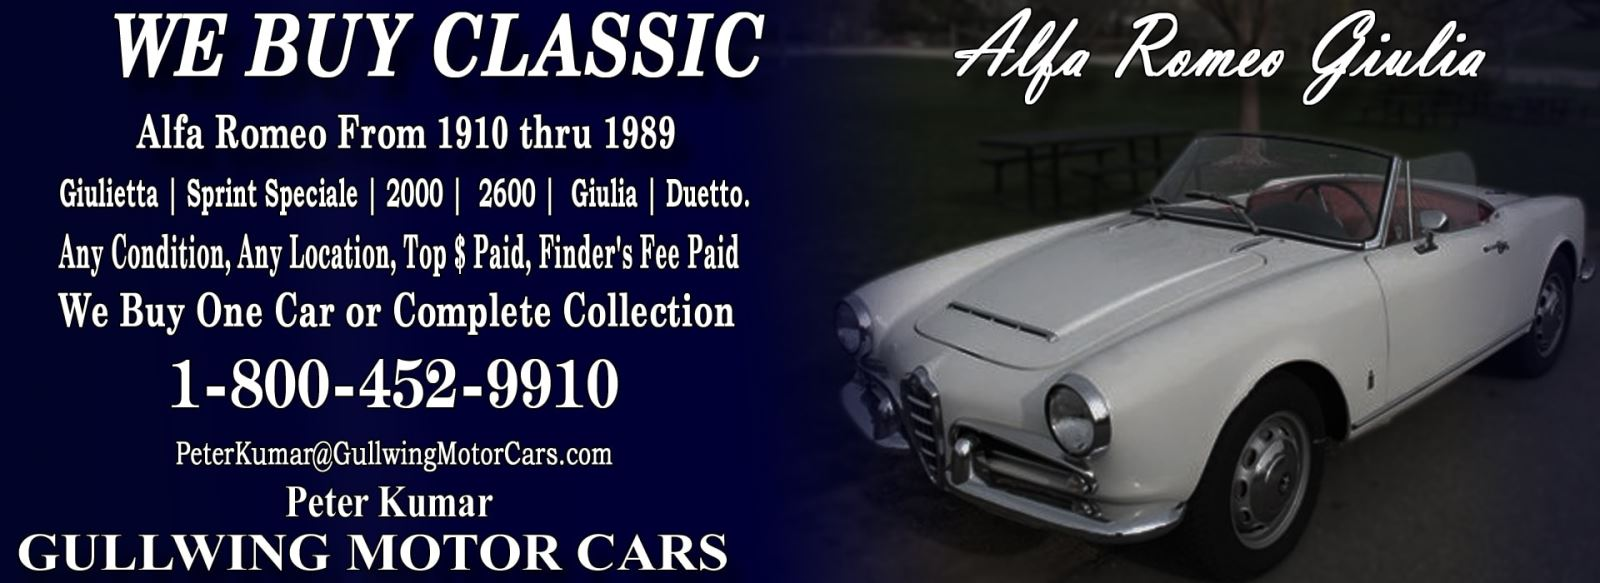 Classic Alfa Romeo Giulia for sale, we buy vintage Alfa Romeo Giulia. Call Peter Kumar. Gullwing Motor